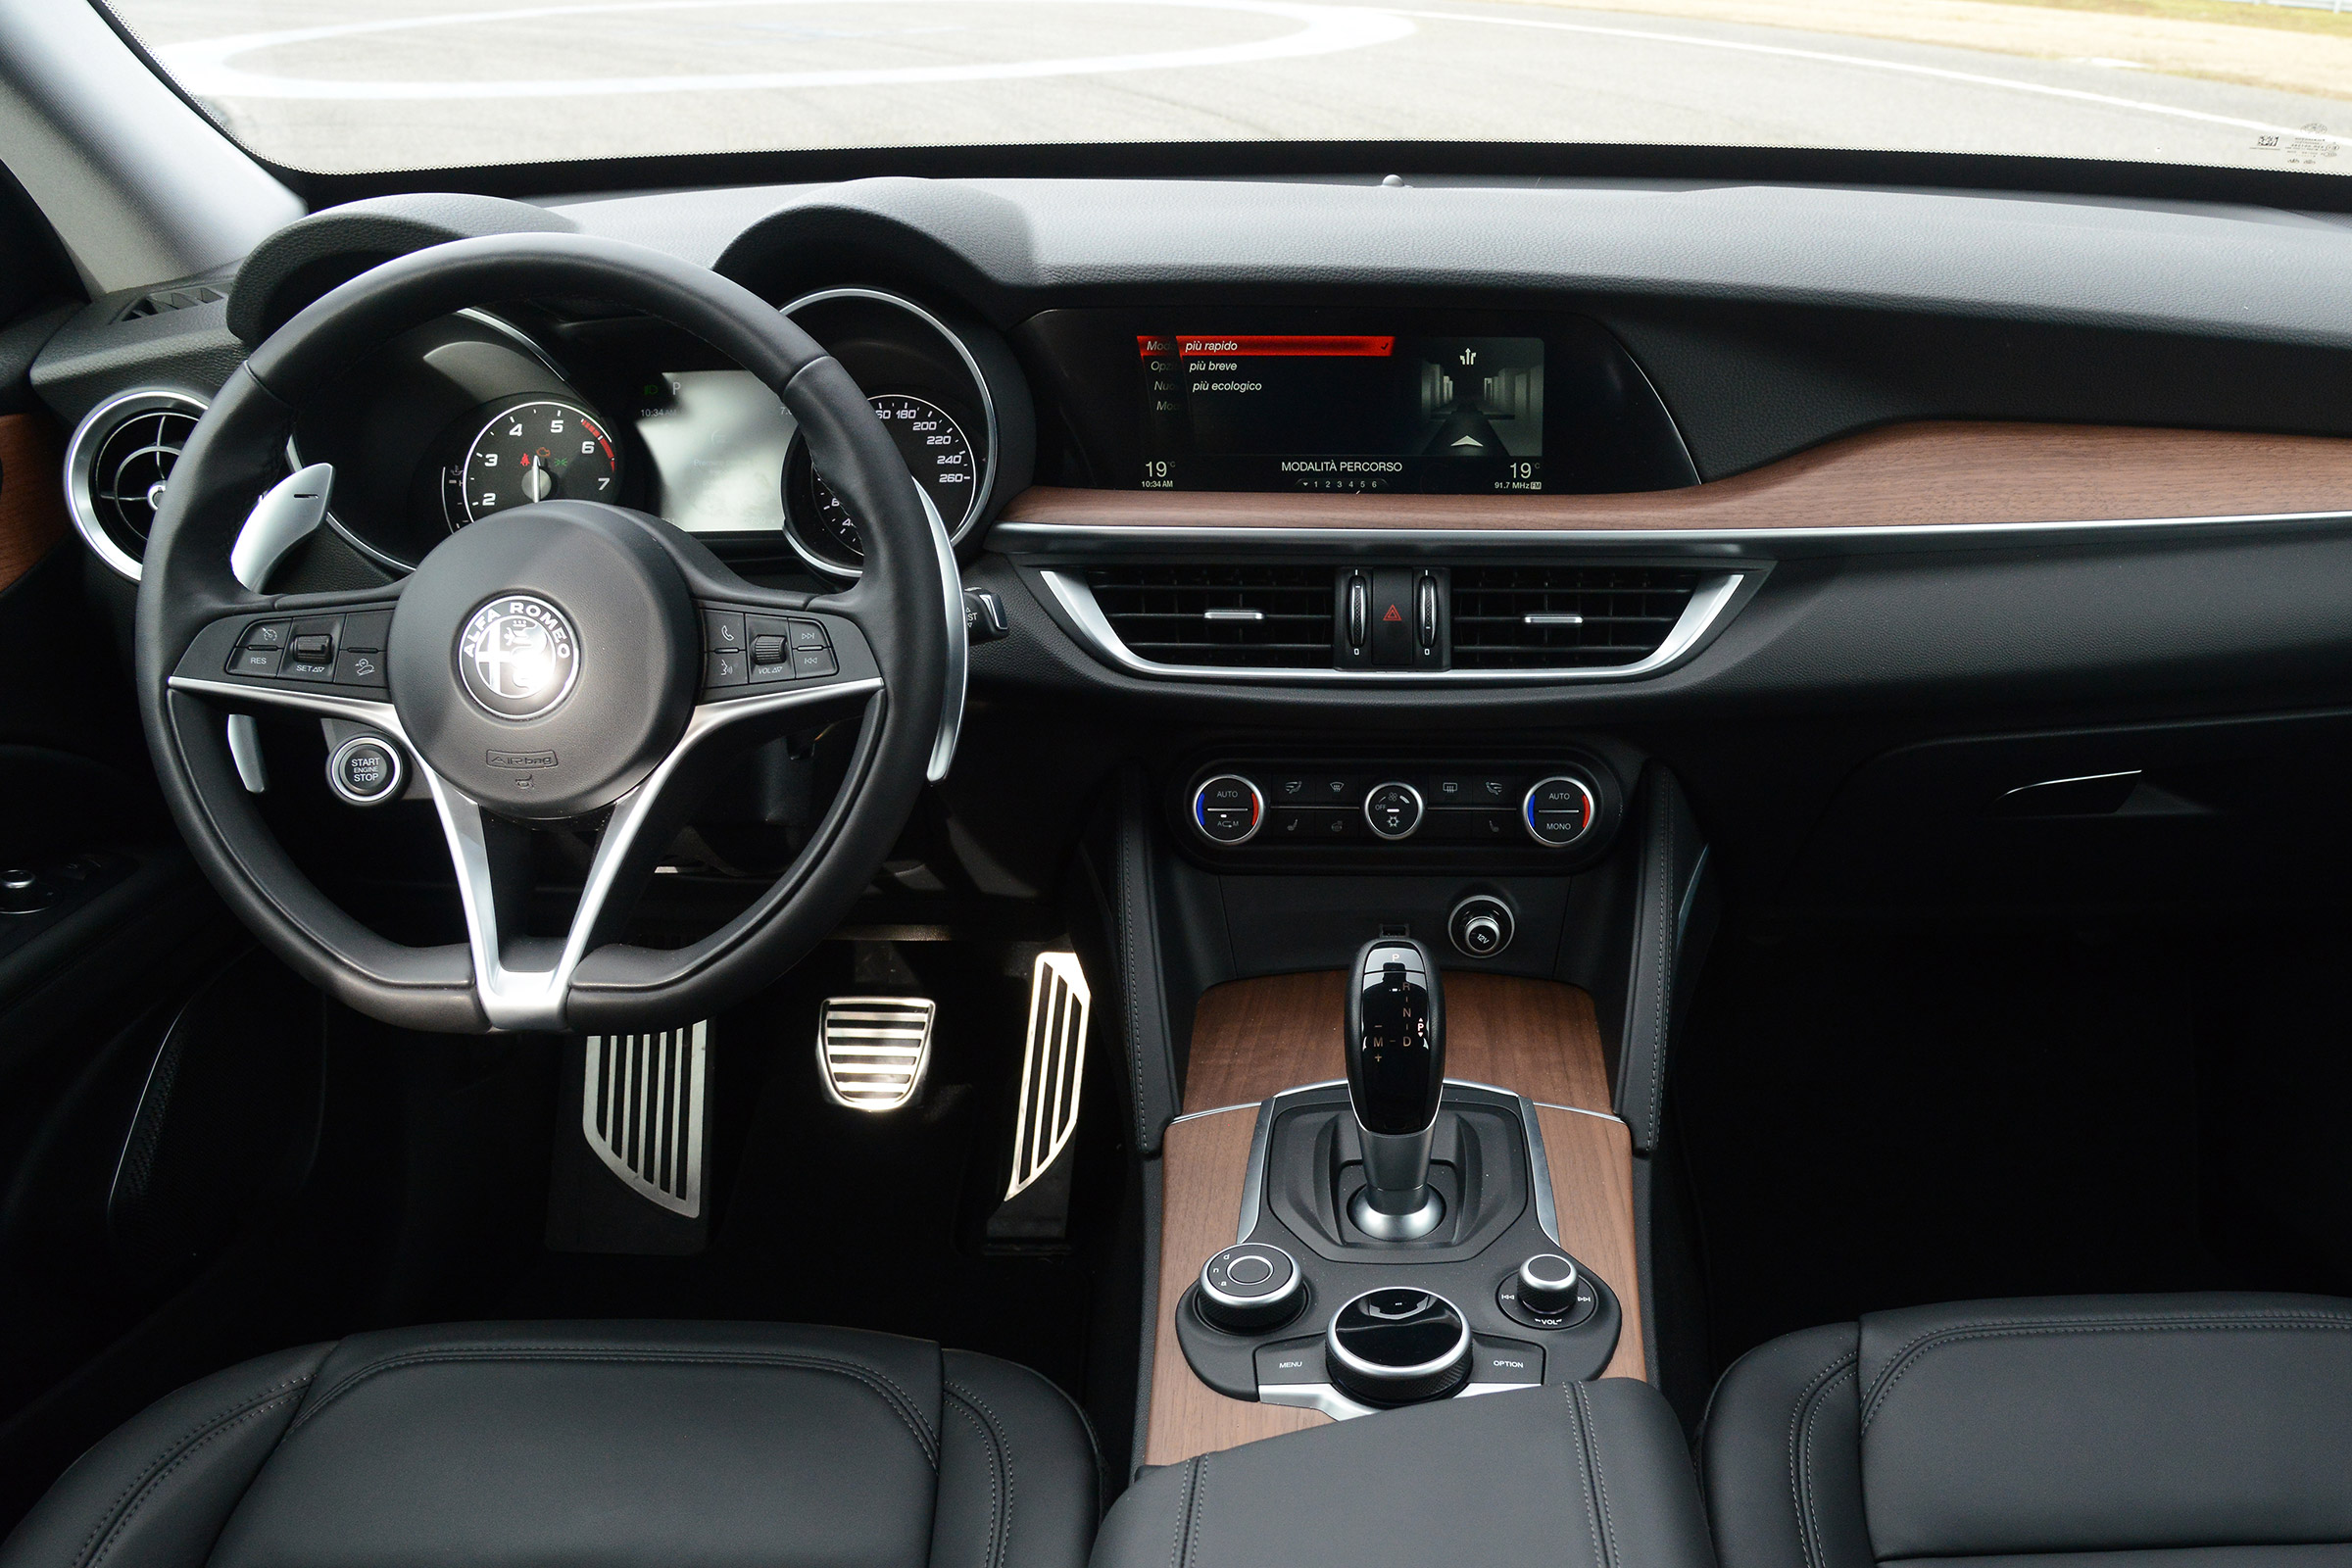 2017 Alfa Romeo Stelvio Interior Dashboard (Photo 11 of 23)